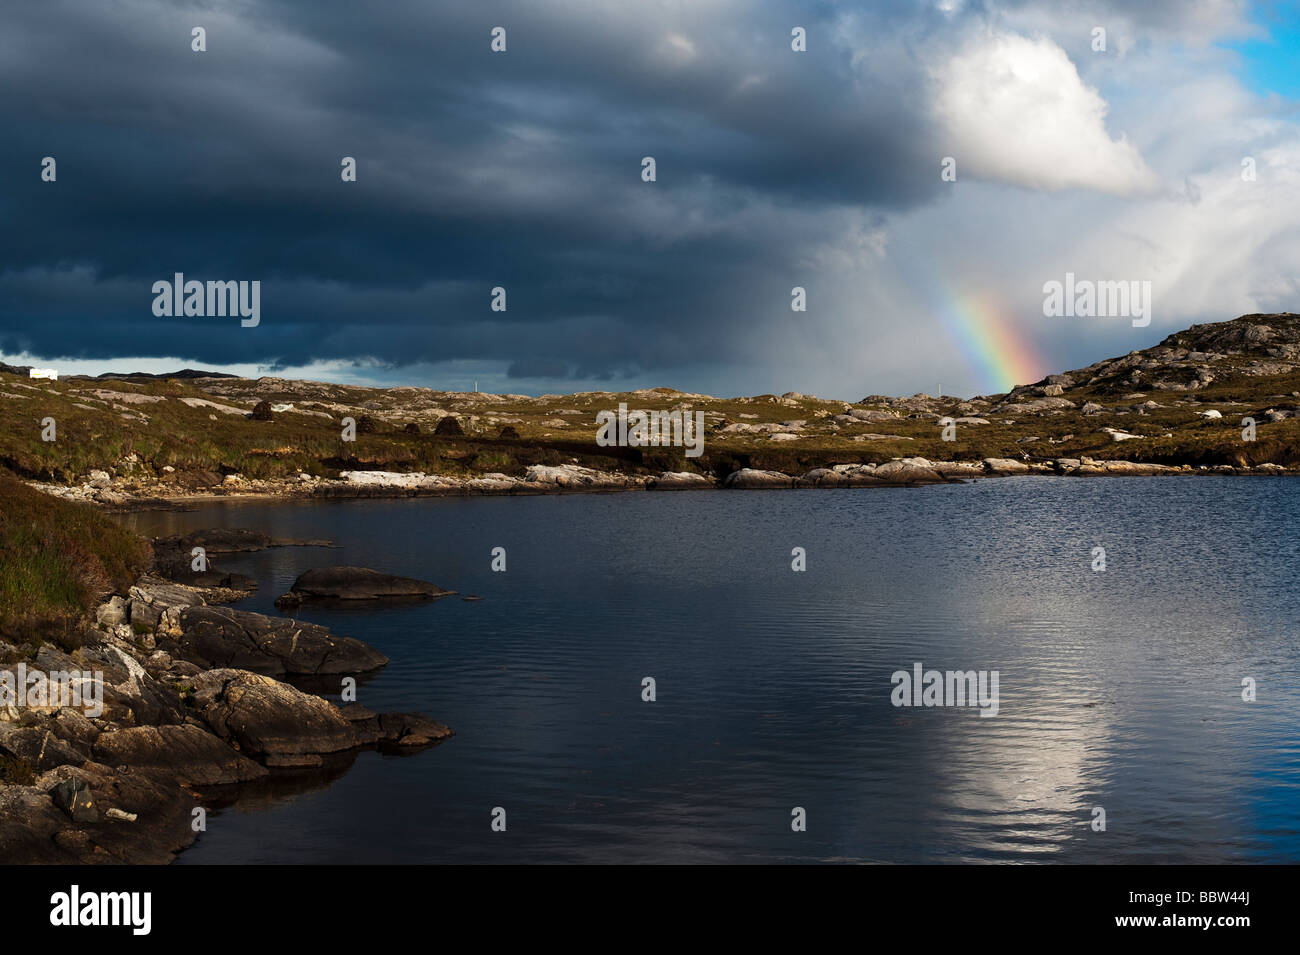 Rainbow over east coatline and loch, Isle of Harris, Outer Hebrides, Scotland Stock Photo